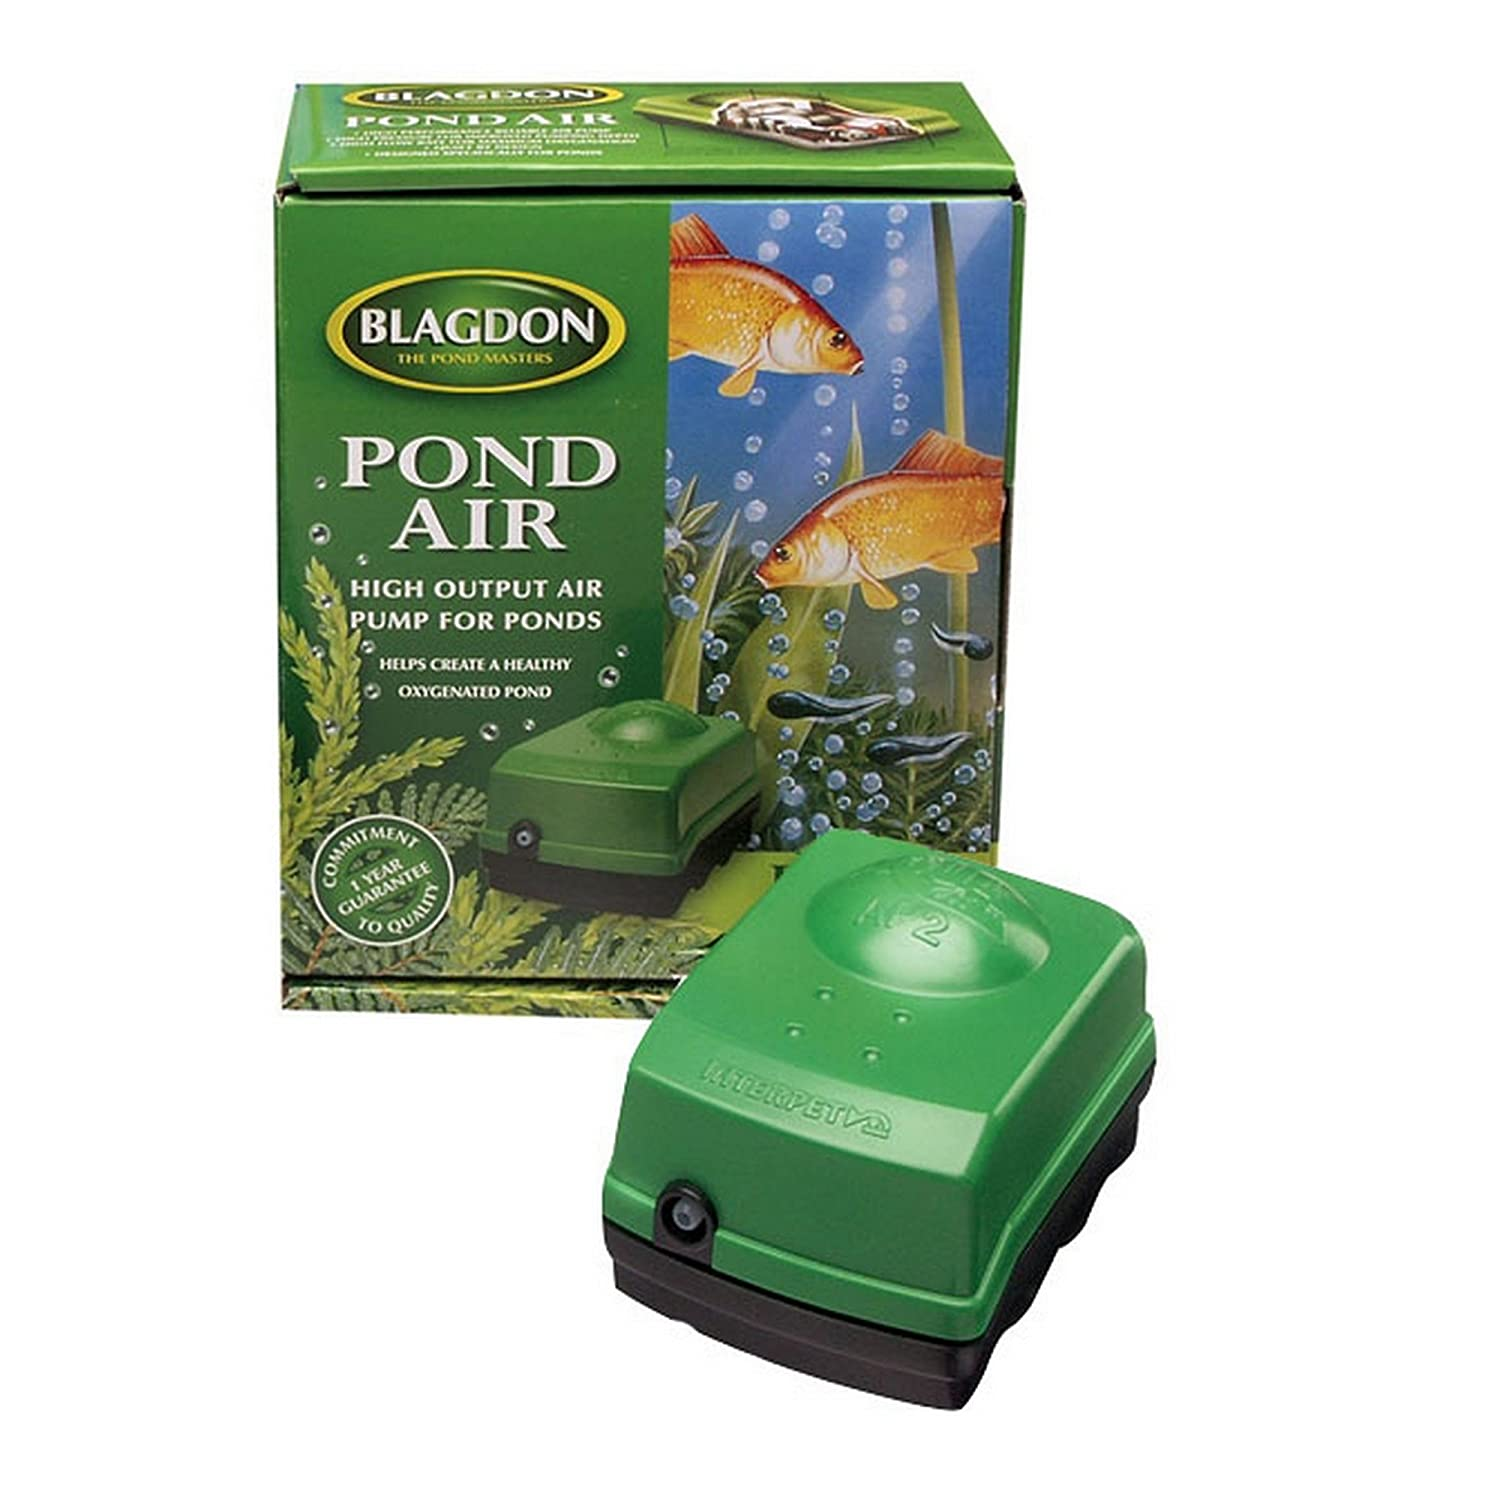 Green One Size Green One Size Interpet Limited Blagdon Air Pump System 2 (One Size) (Green)